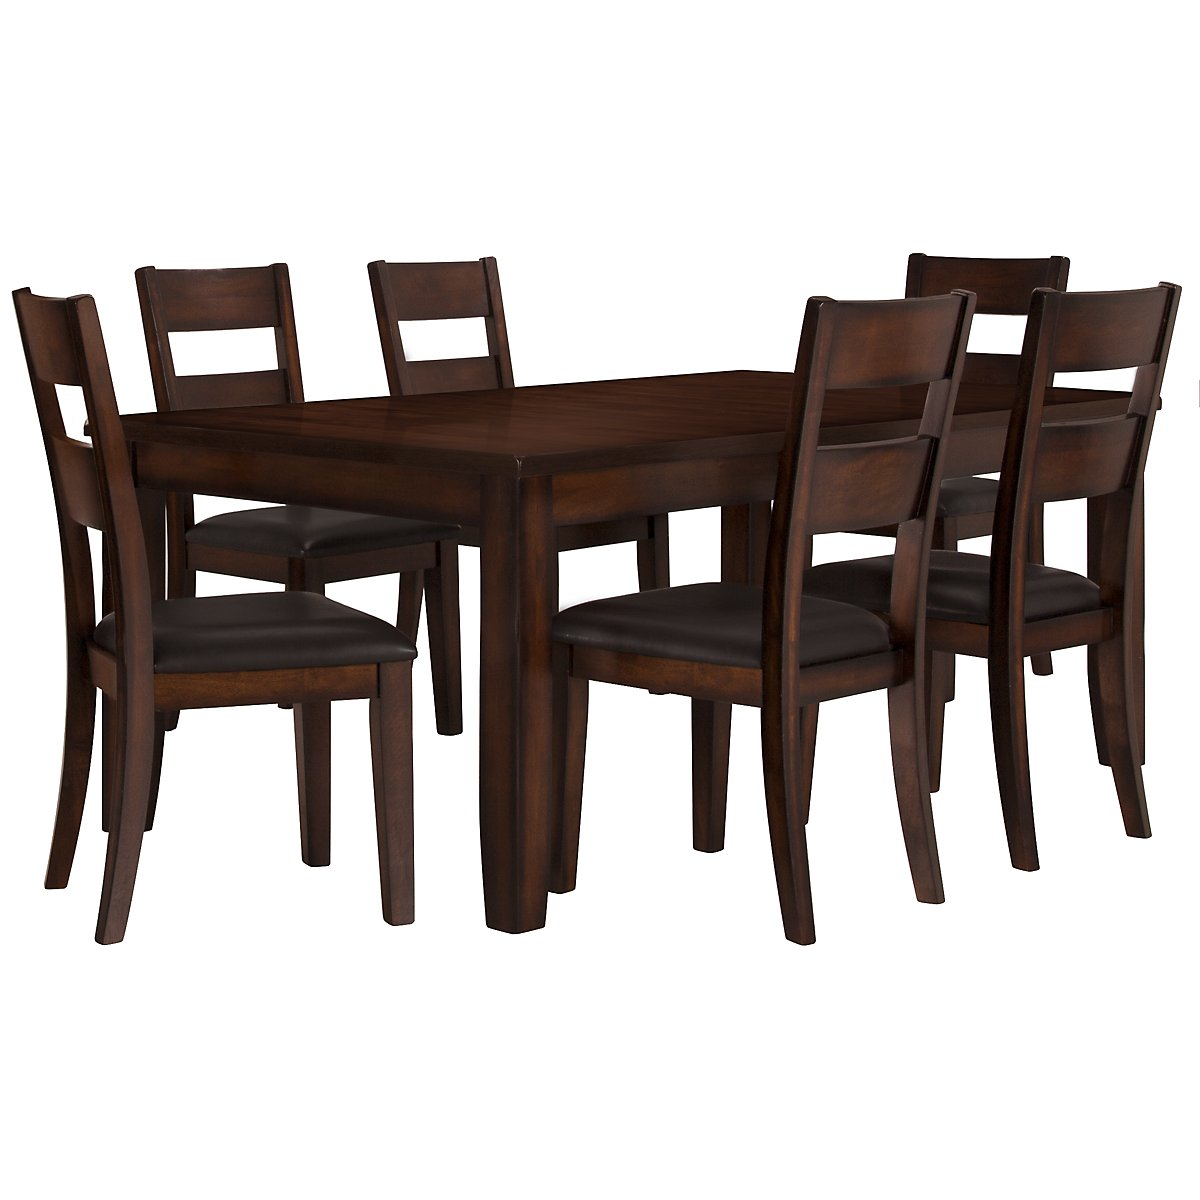 Mango2 Dark Tone Rect Table & 4 Chairs